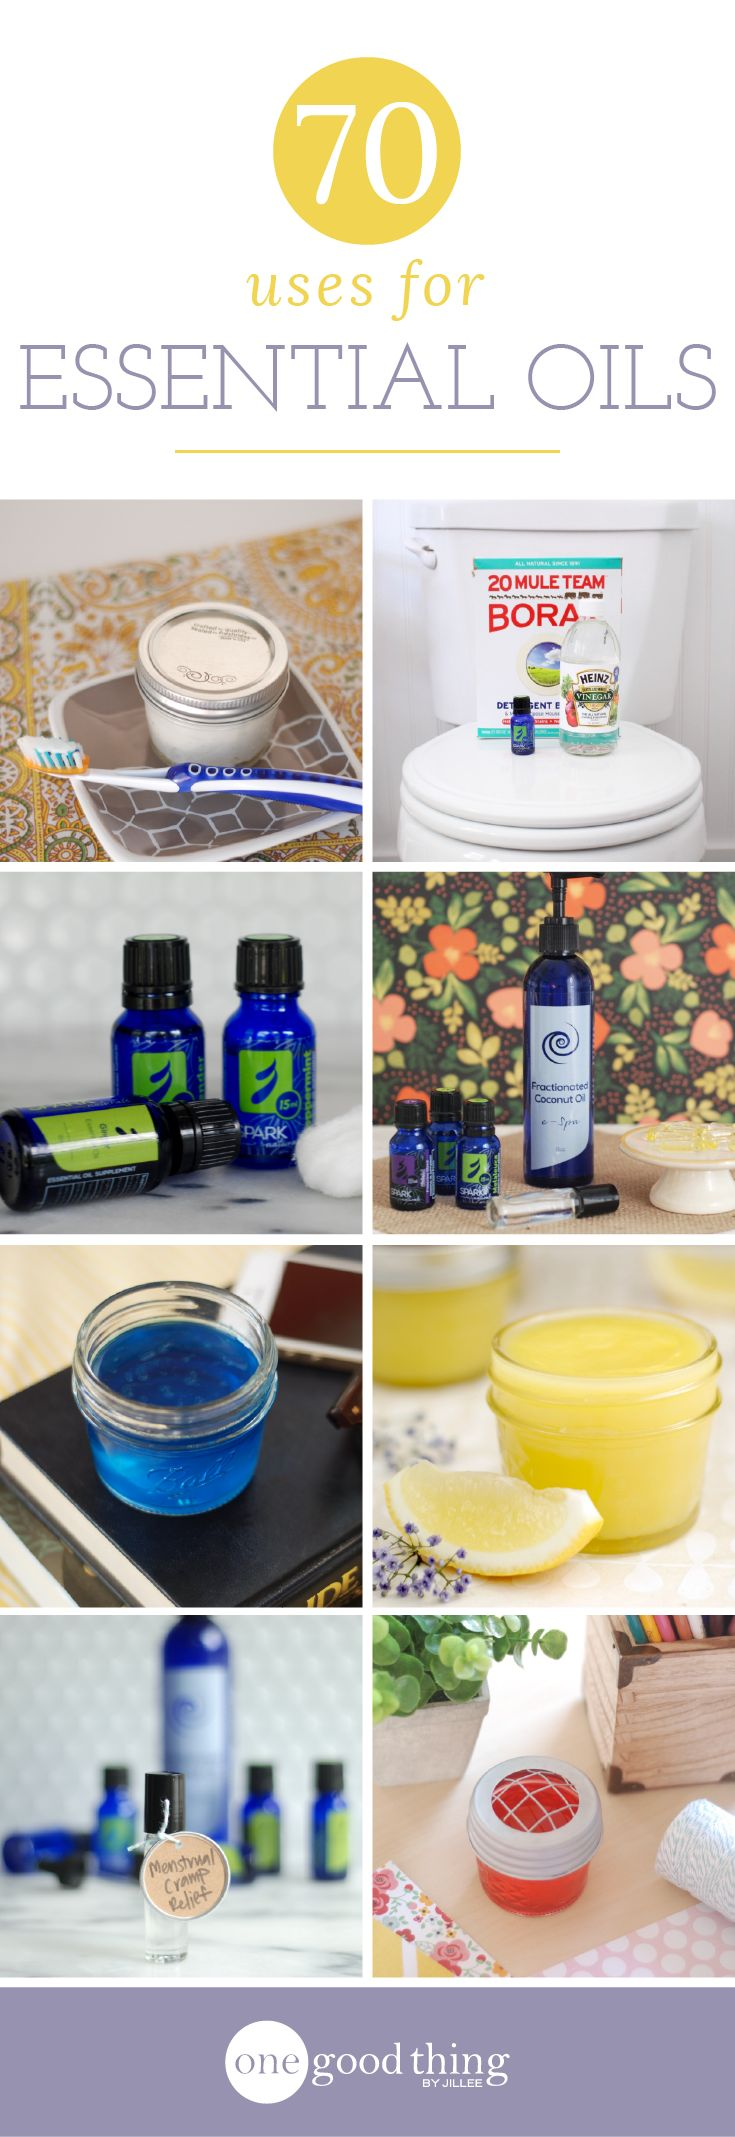 Wondering how to get started with essential oils? Here is a list of 70 of my favorite uses for essential oils, for pros and newbies alike!